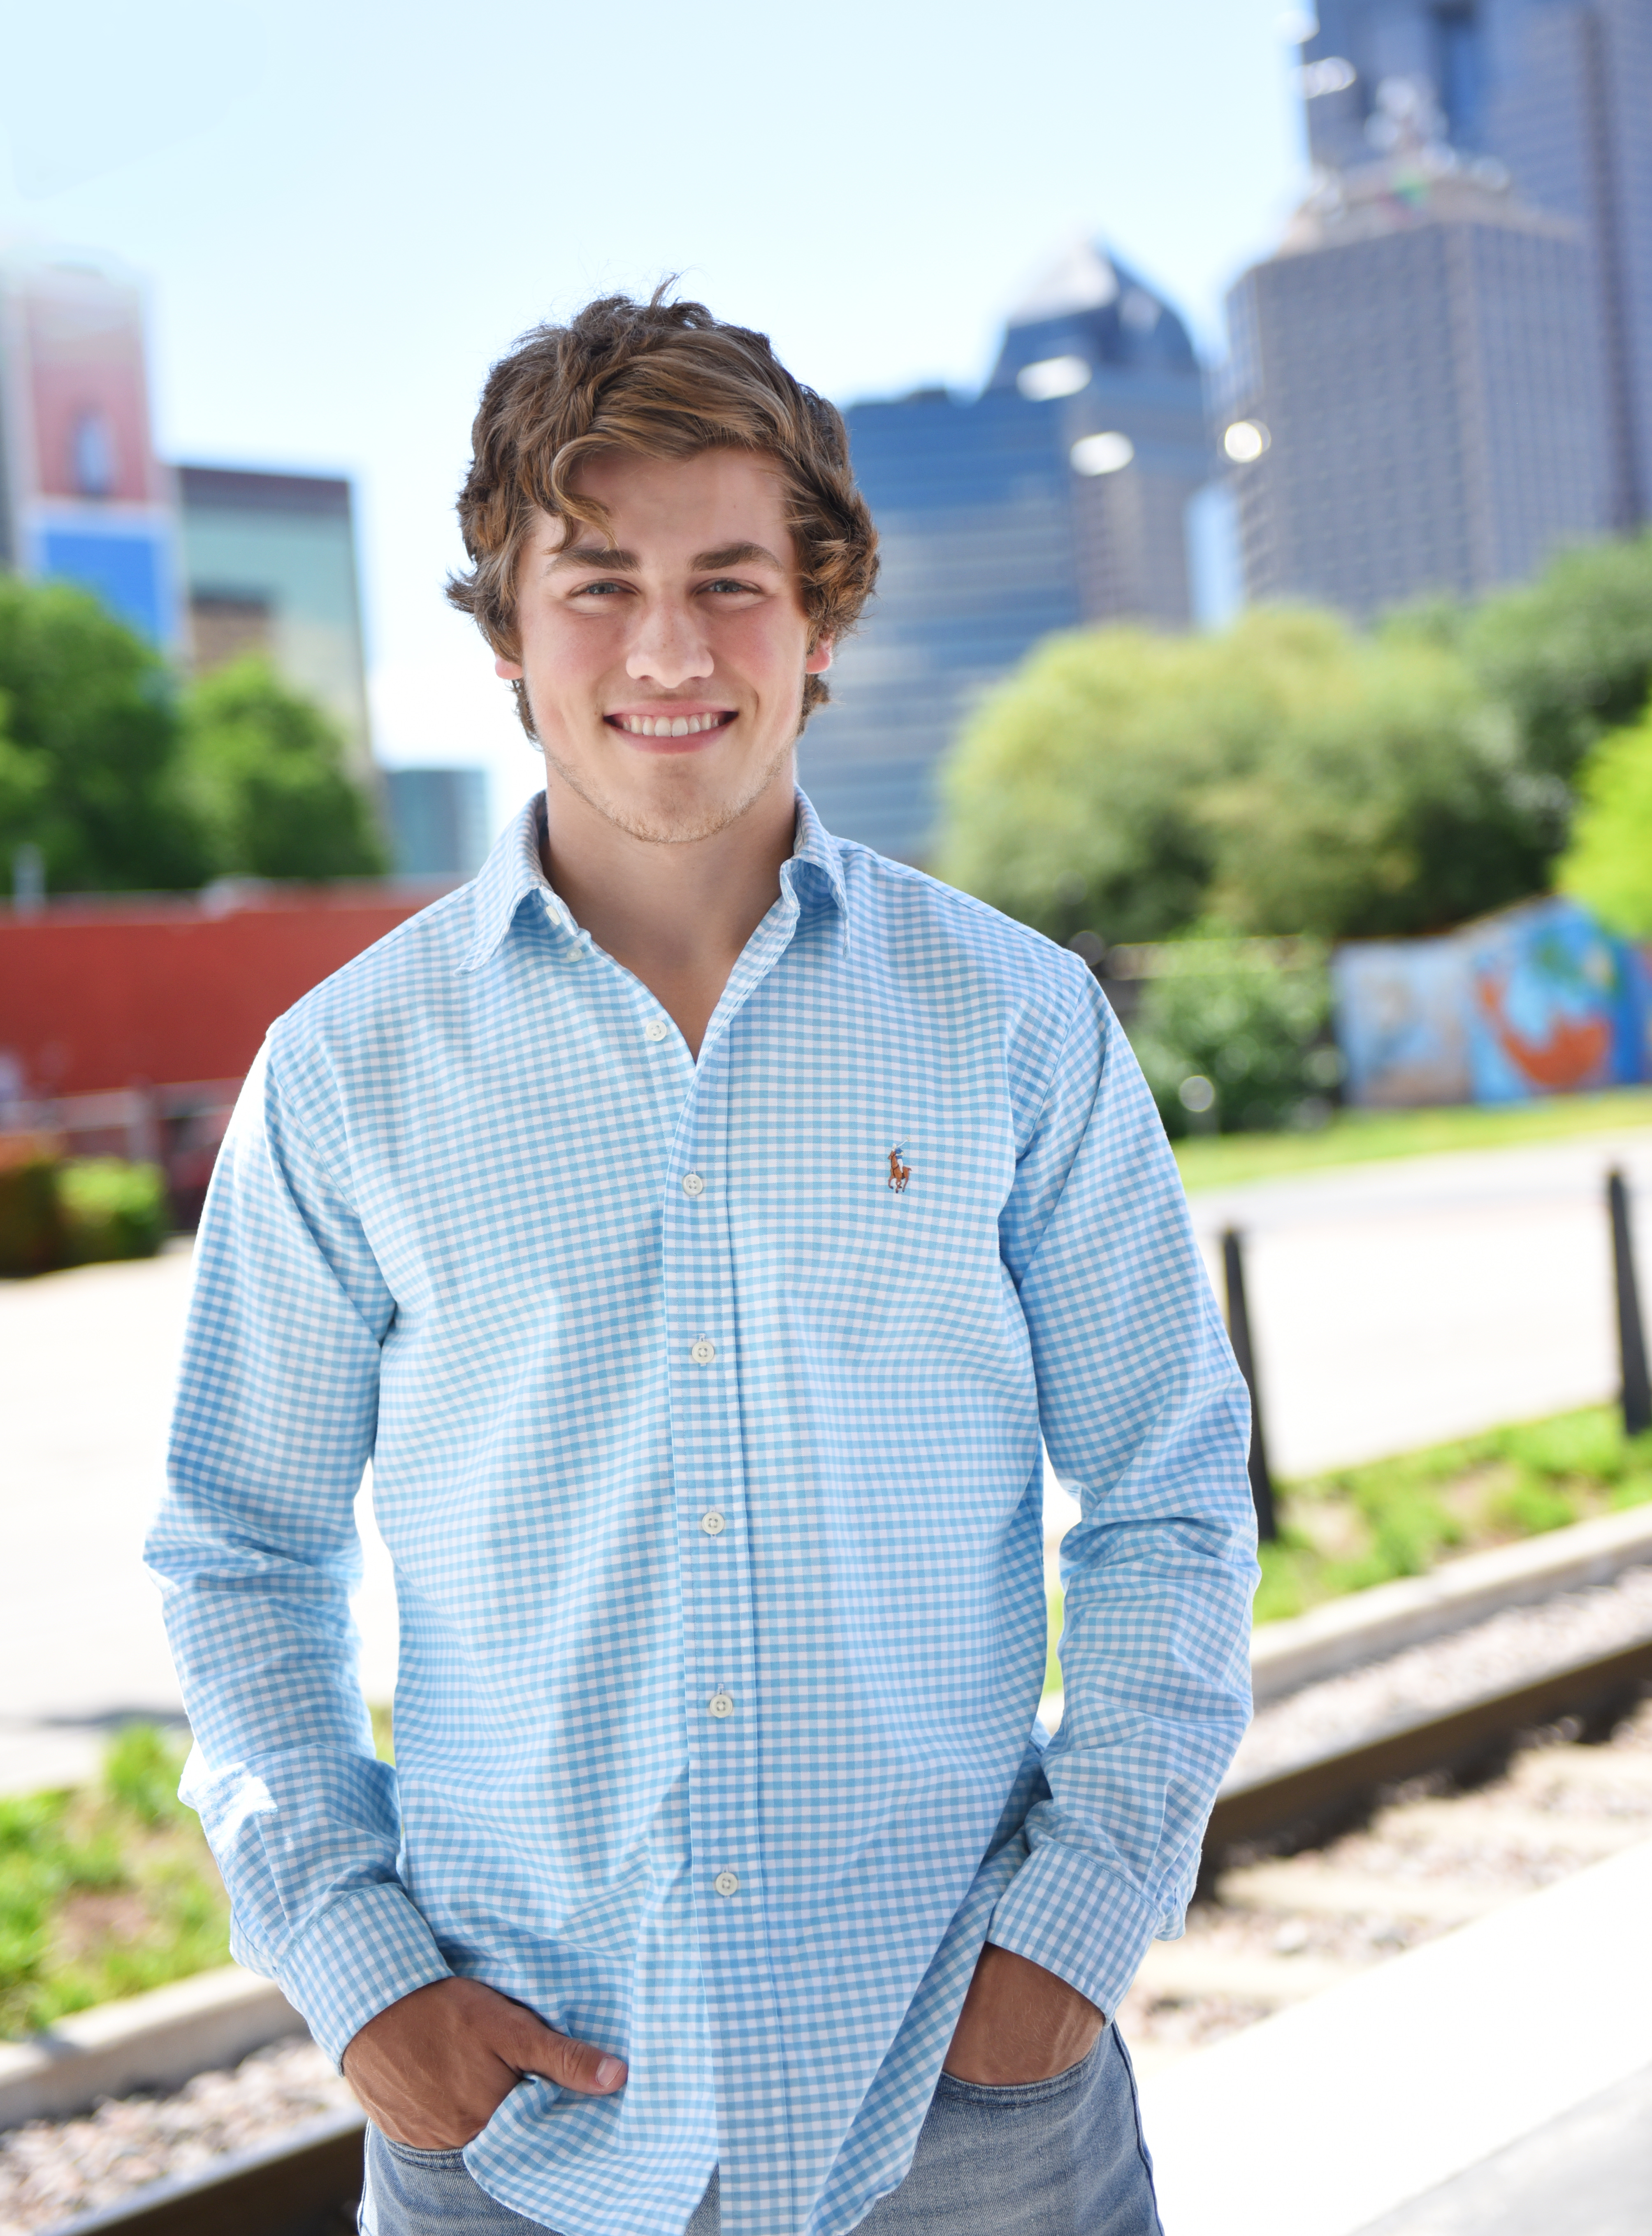 Downtown Dallas Senior Pictures